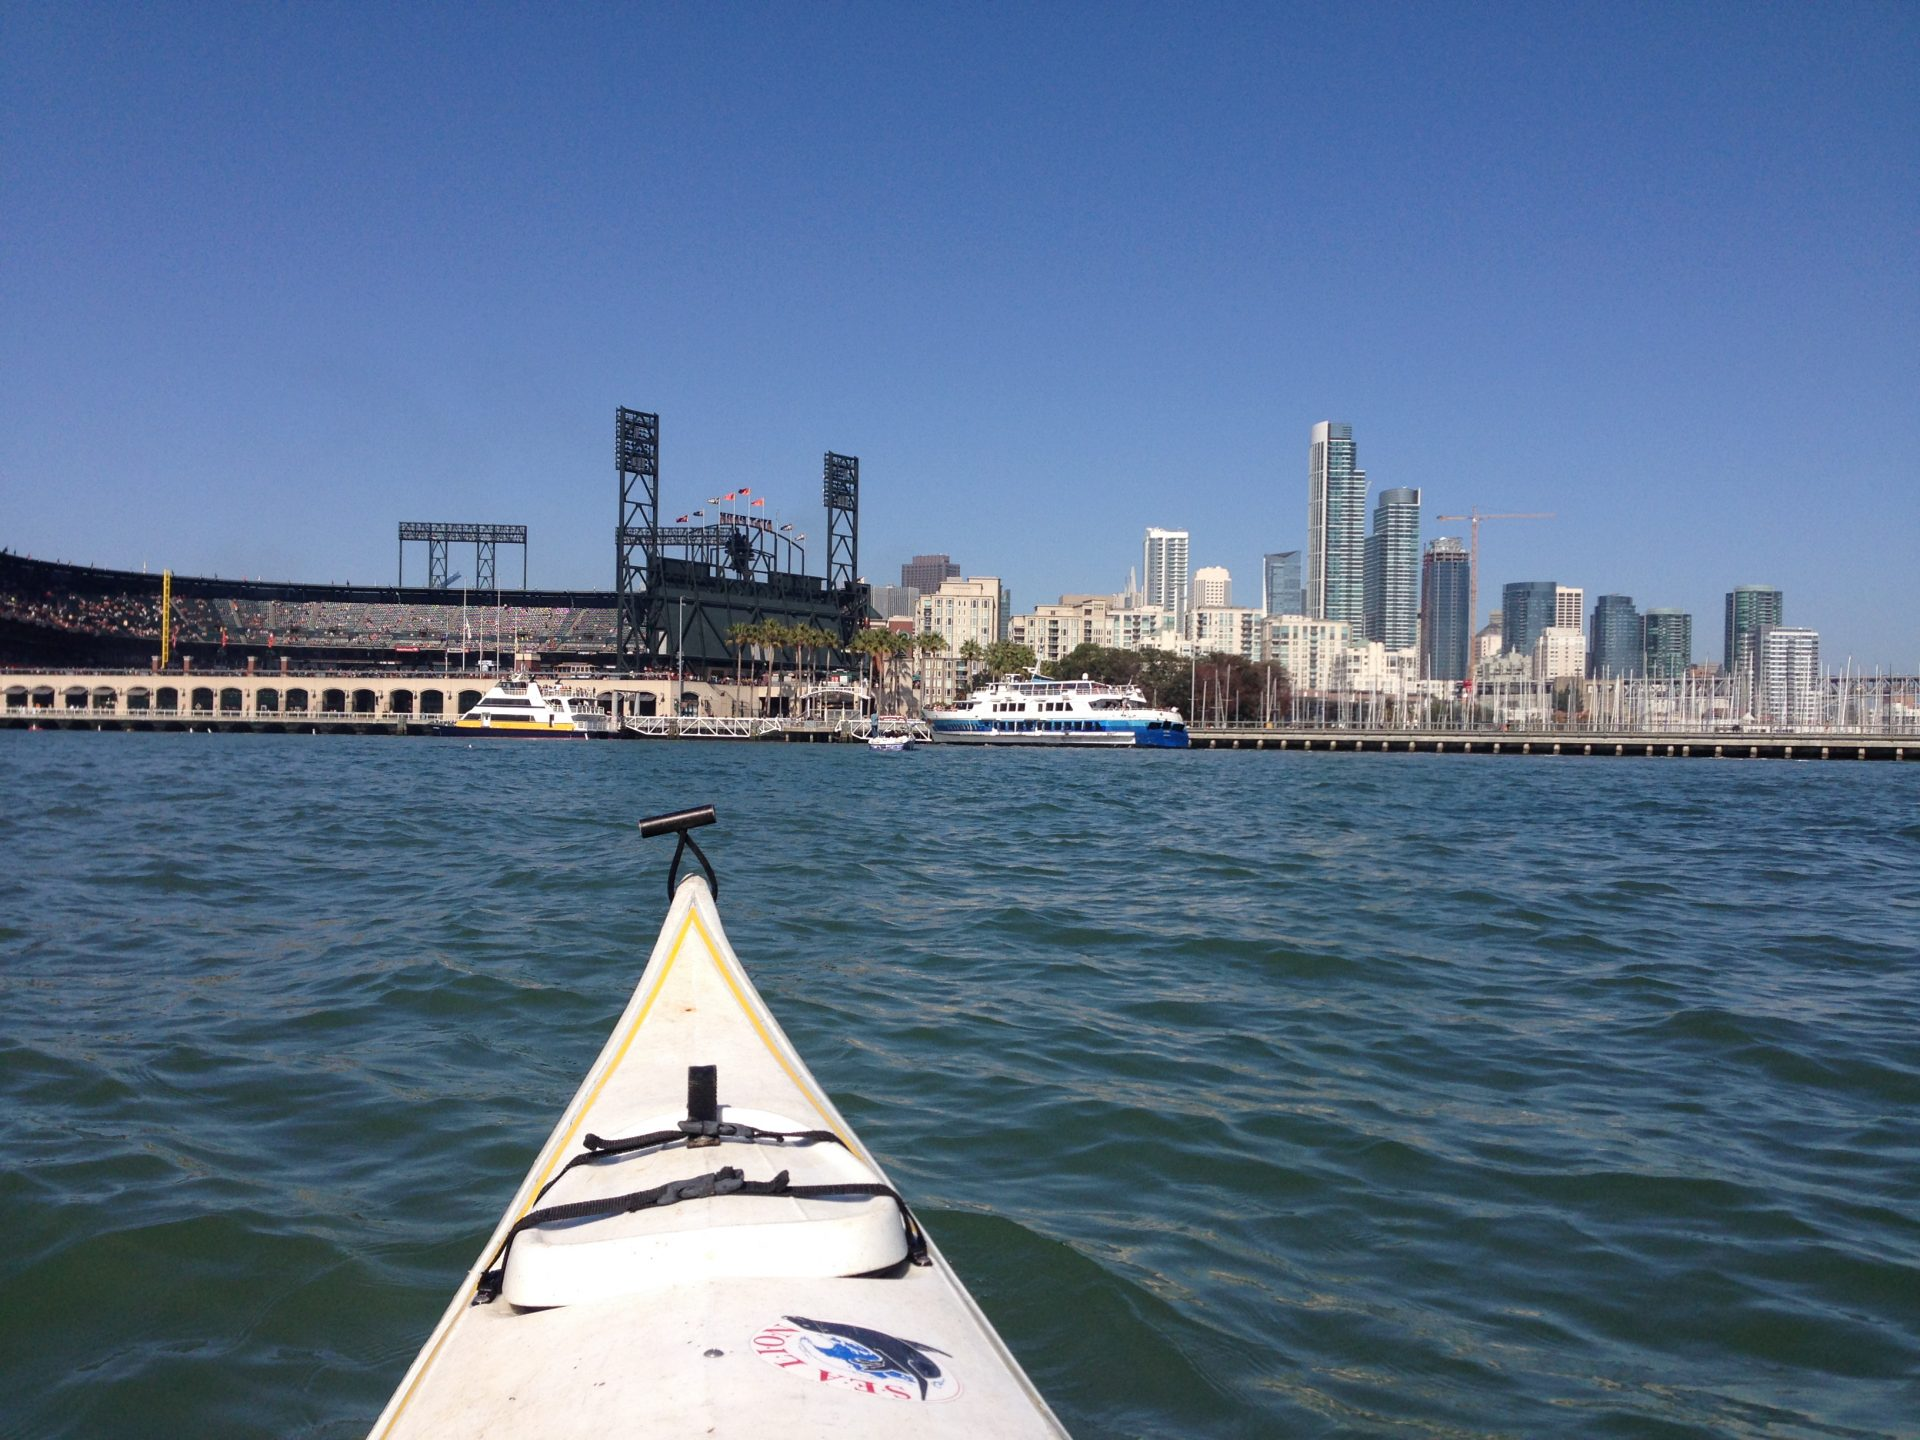 Looking from kayak to ferries stopping at Giants ballpark